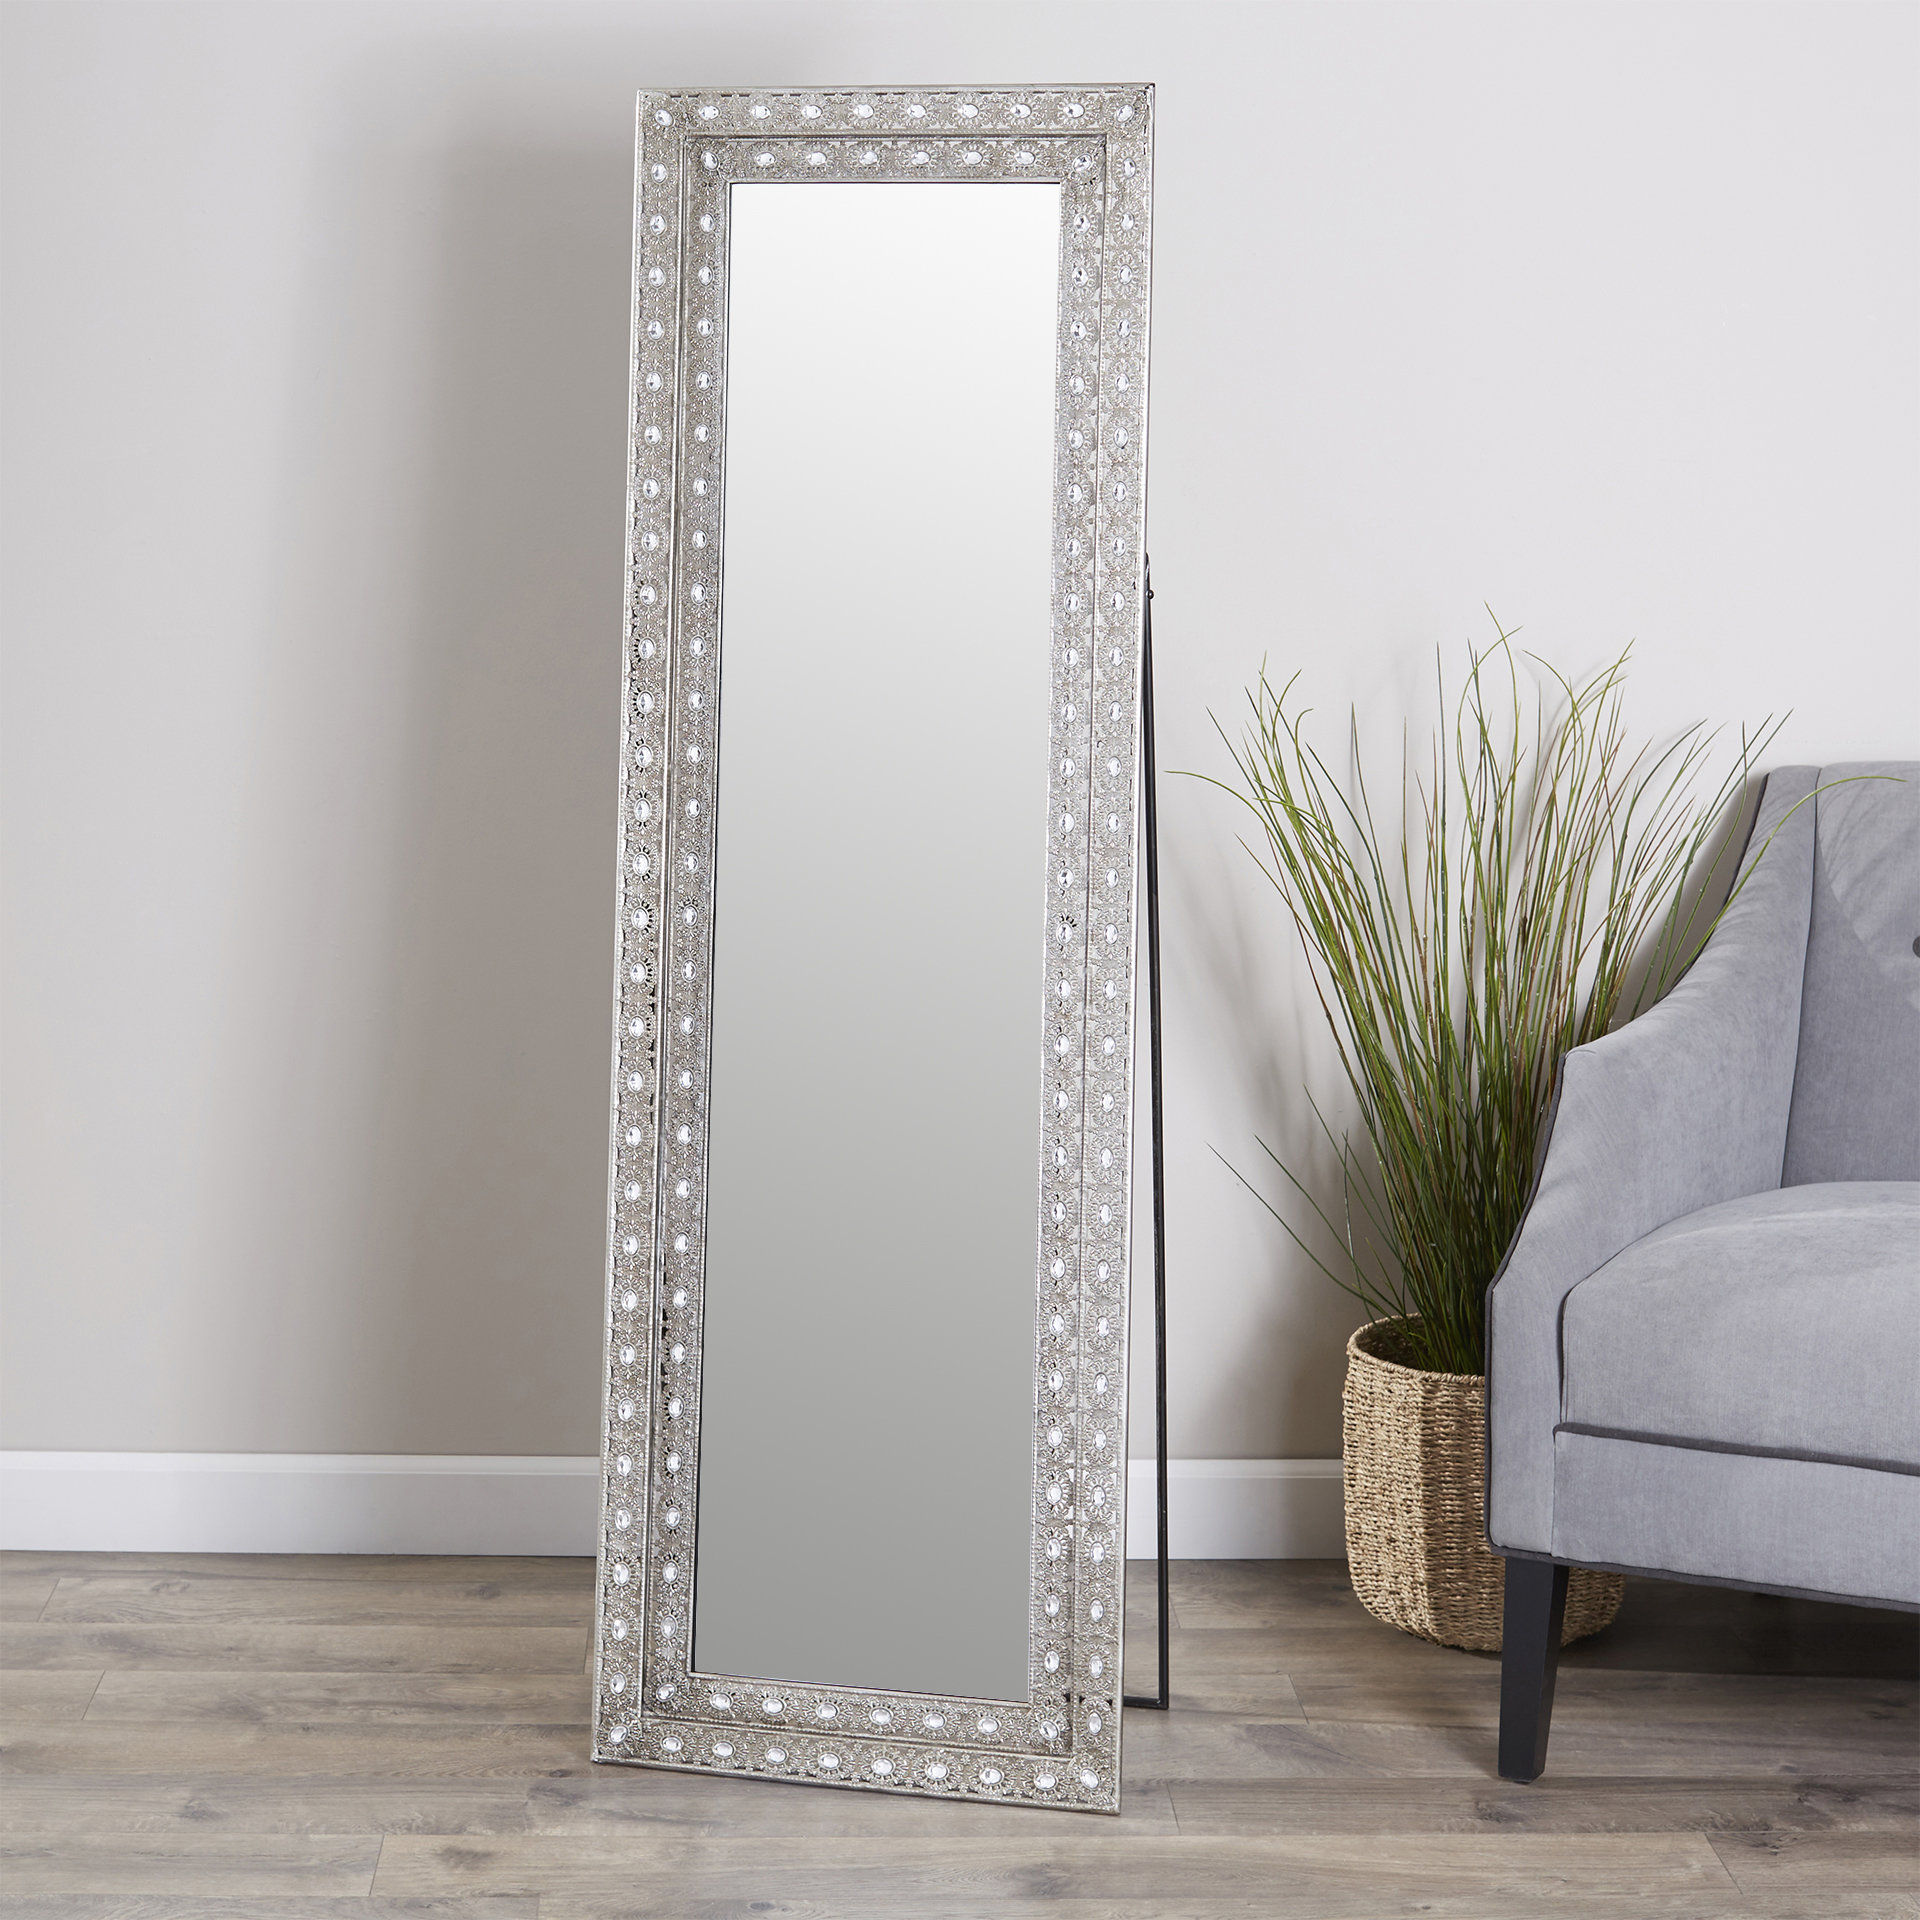 Sveta Traditional Full Length Mirror Intended For Lake Park Beveled Beaded Accent Wall Mirrors (View 25 of 30)